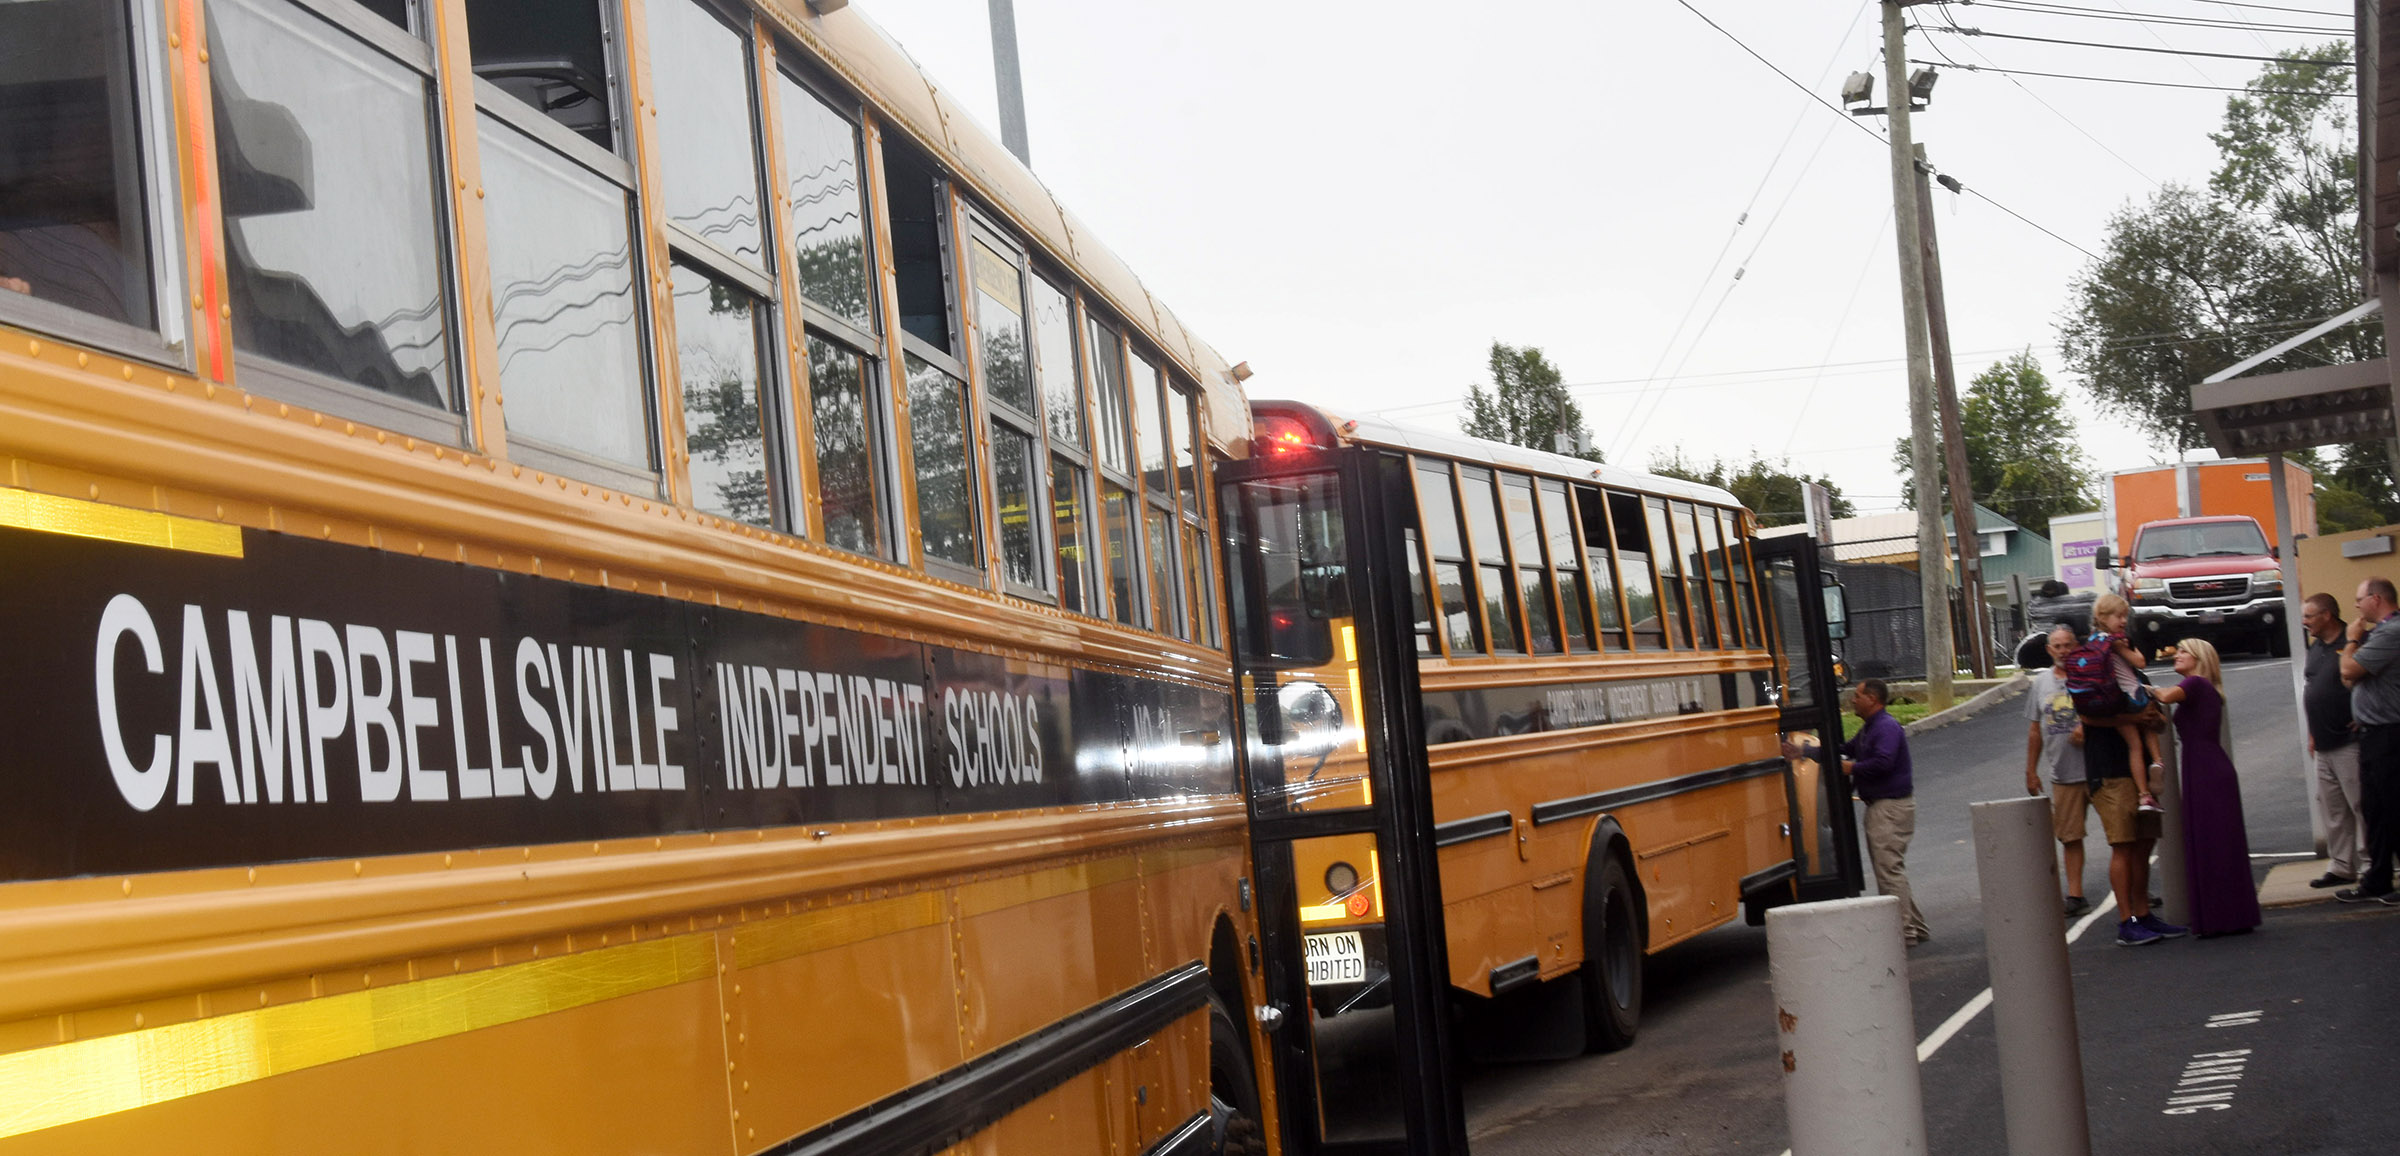 Campbellsville Independent Schools' students catch the bus as they go home at the end of the day.